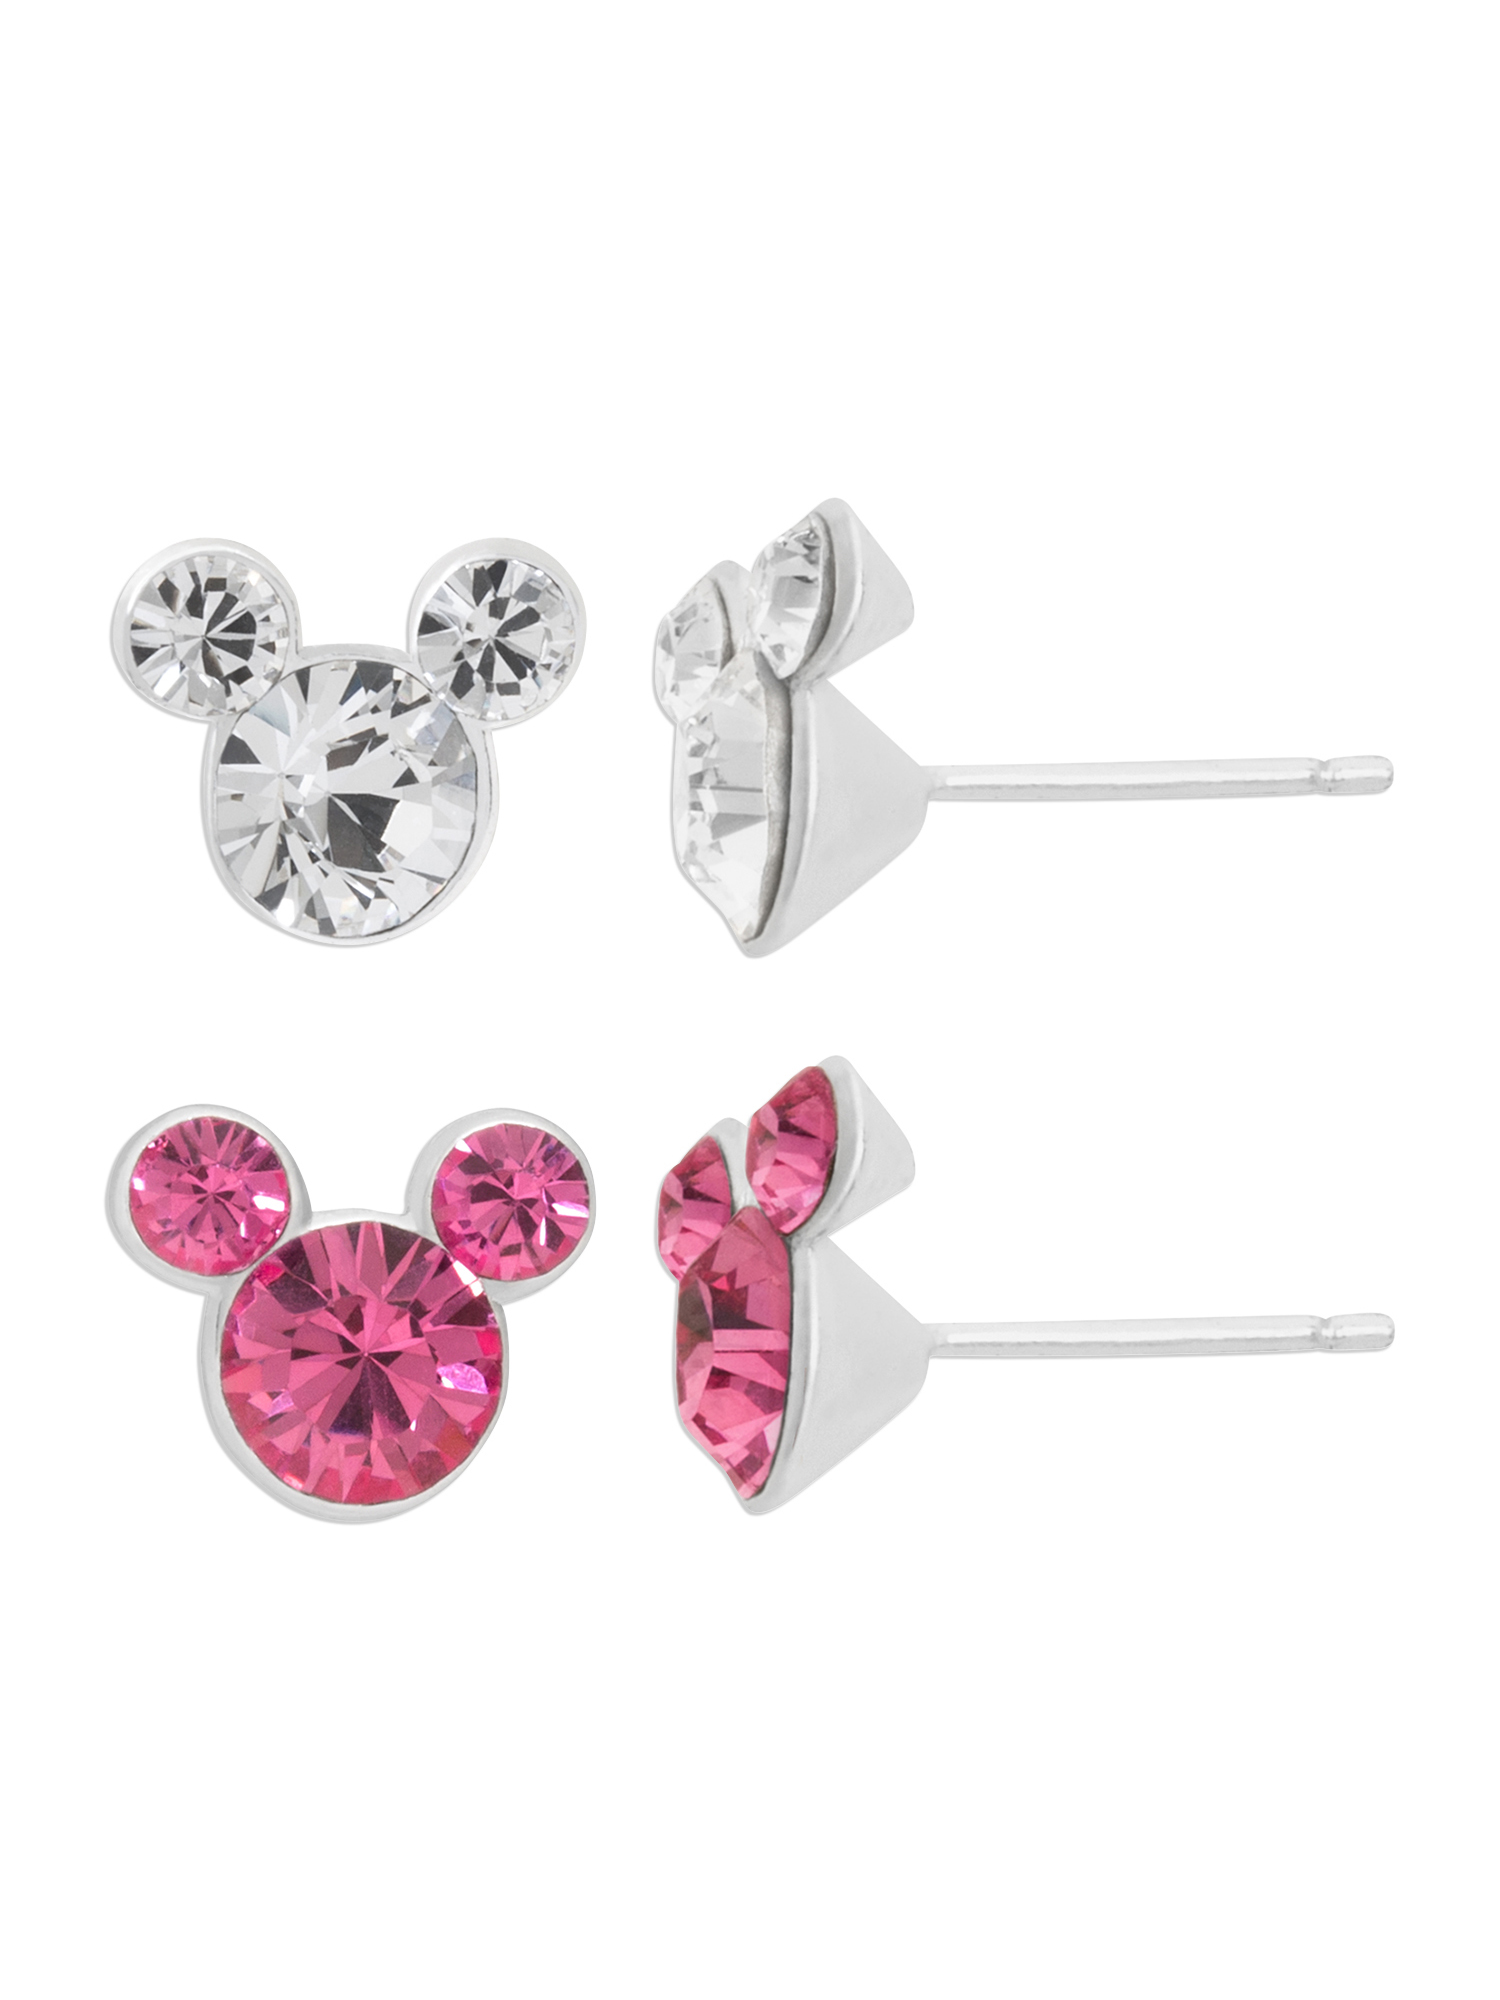 Sterling Silver Pink and Clear Crystal Stud Earrings Set